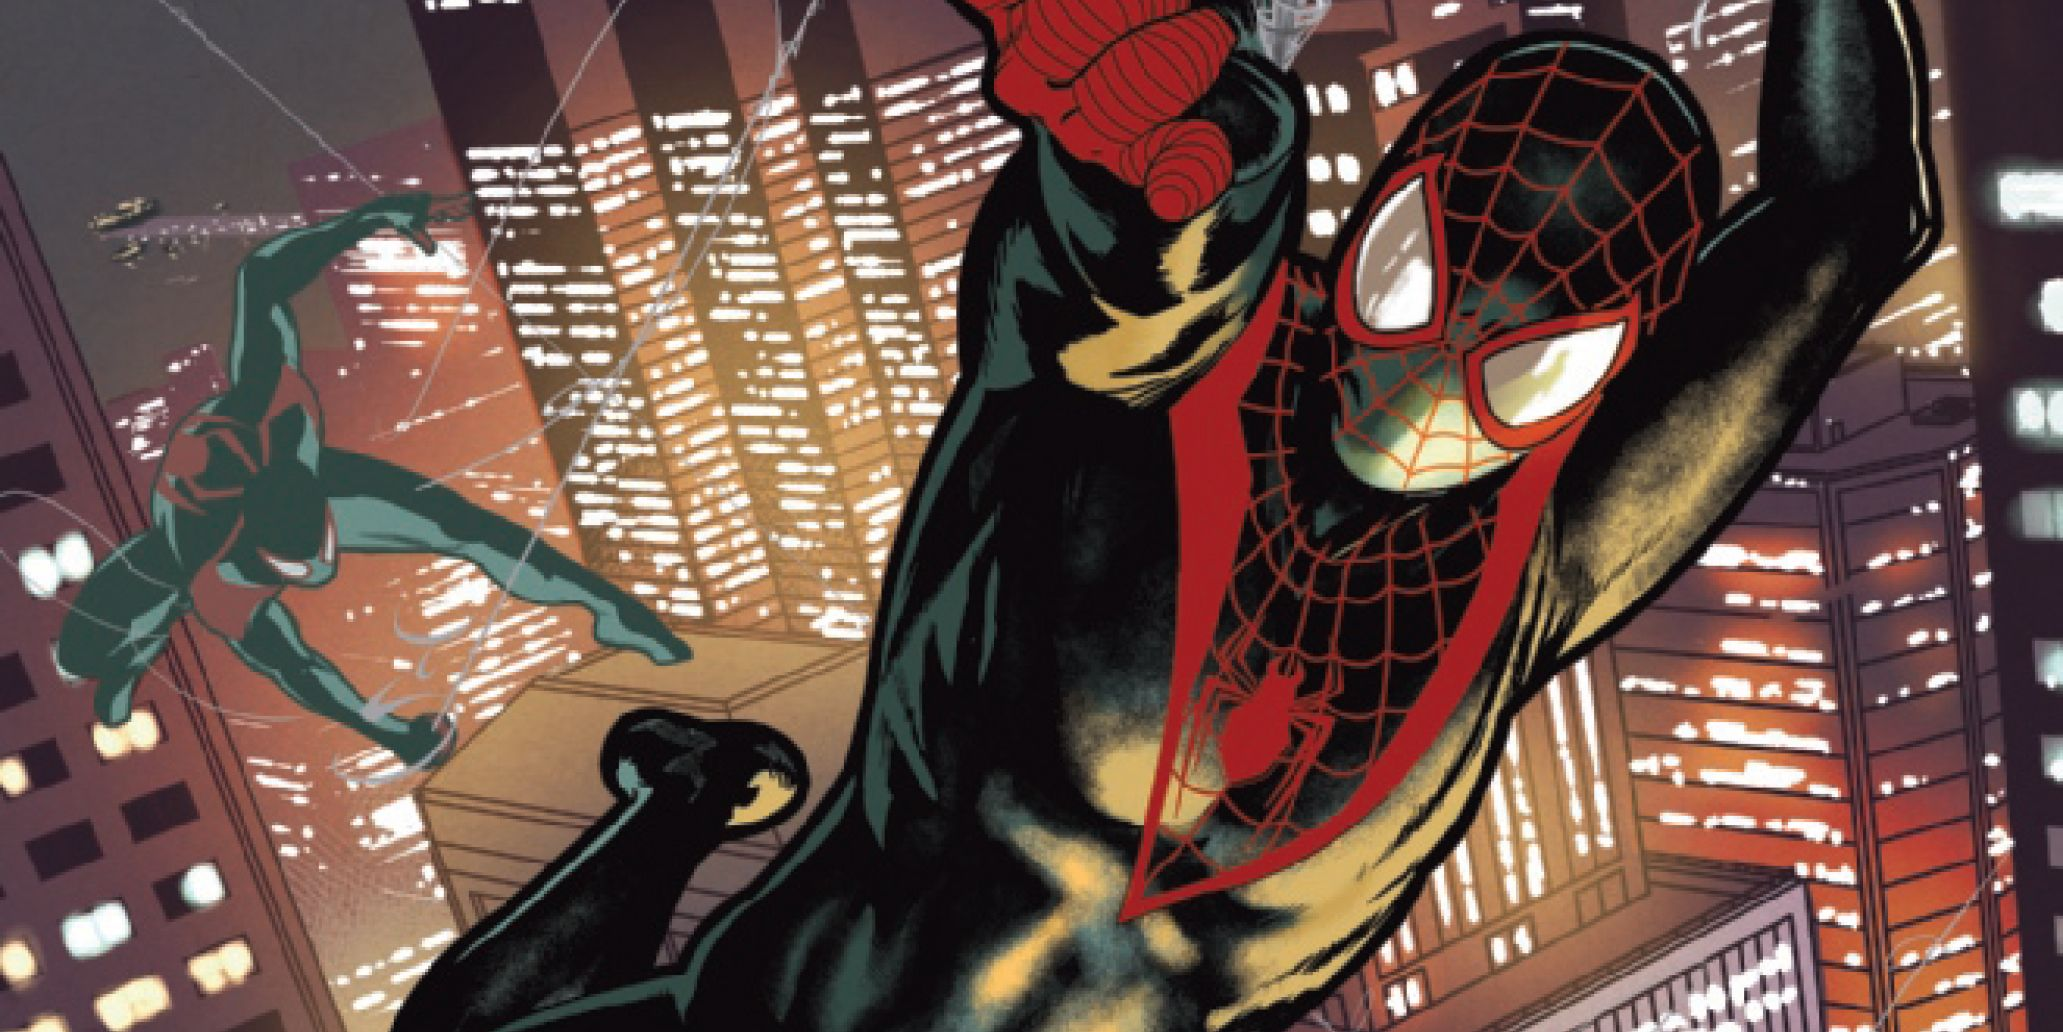 EXCLUSIVE: MIles Morales & Ms. Marvel Team Up in Spider-Man #24